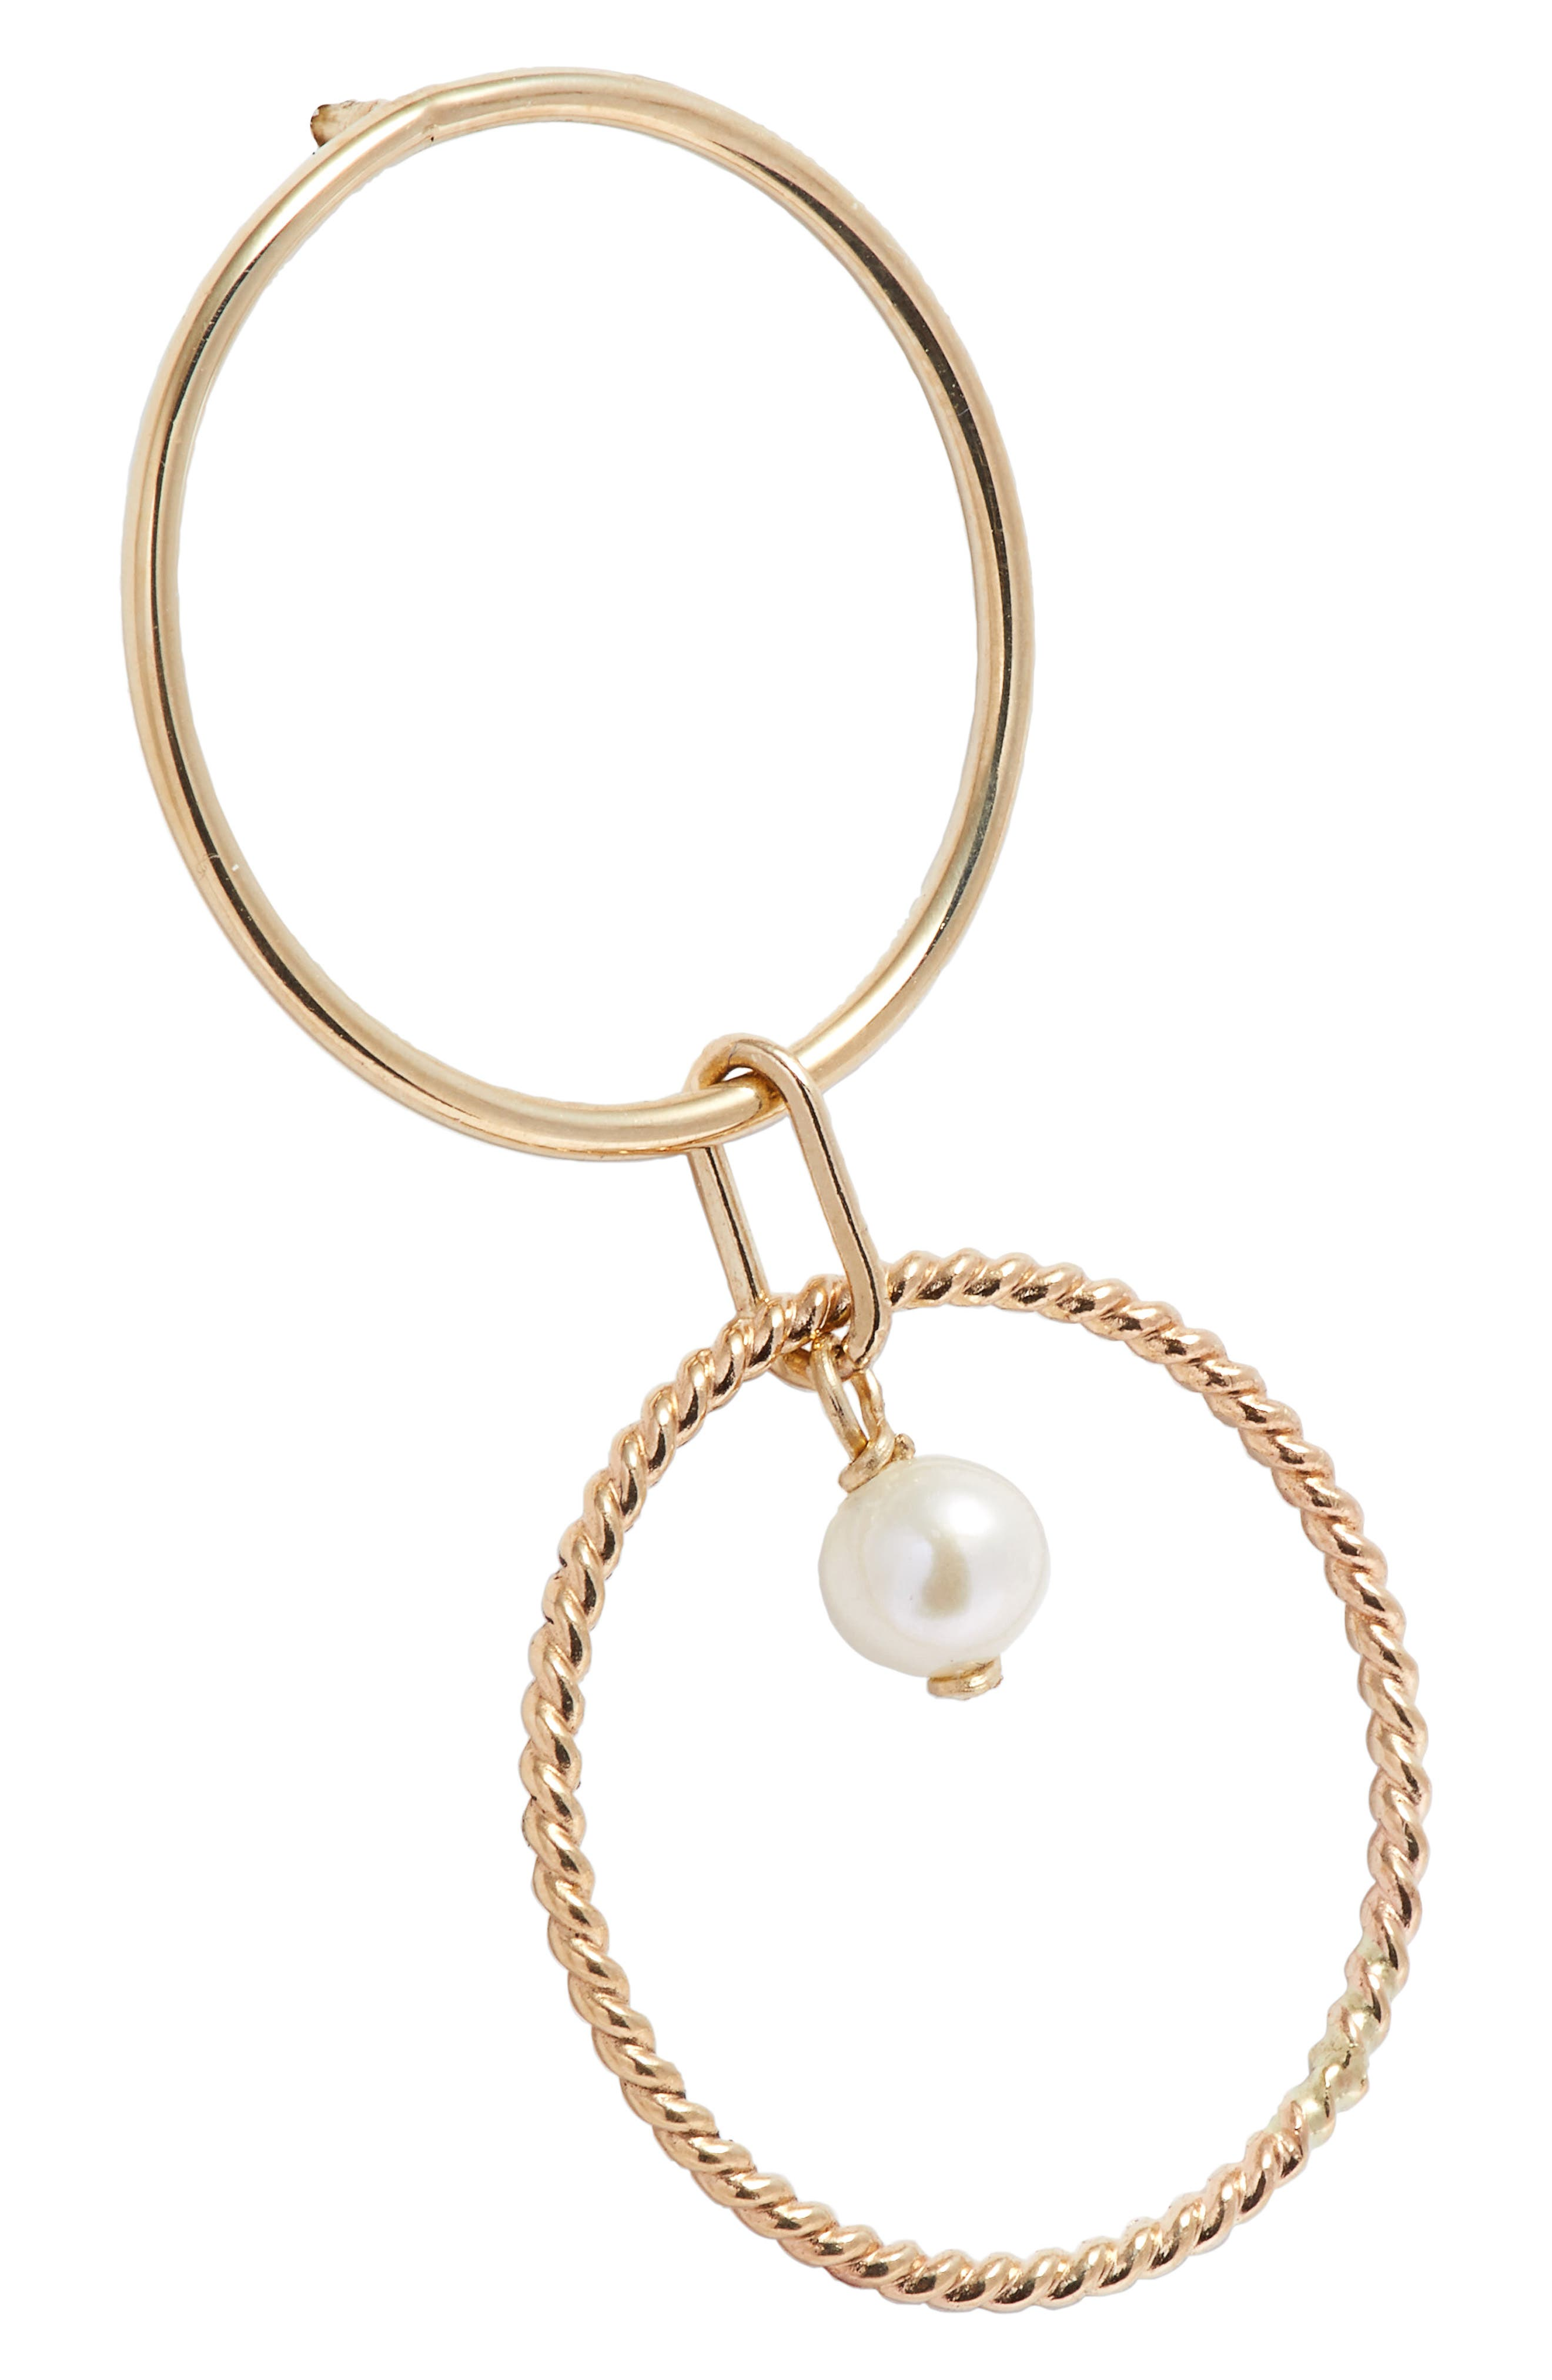 Pearl Double Hoop Earrings,                             Alternate thumbnail 5, color,                             YELLOW GOLD/ WHITE PEARL